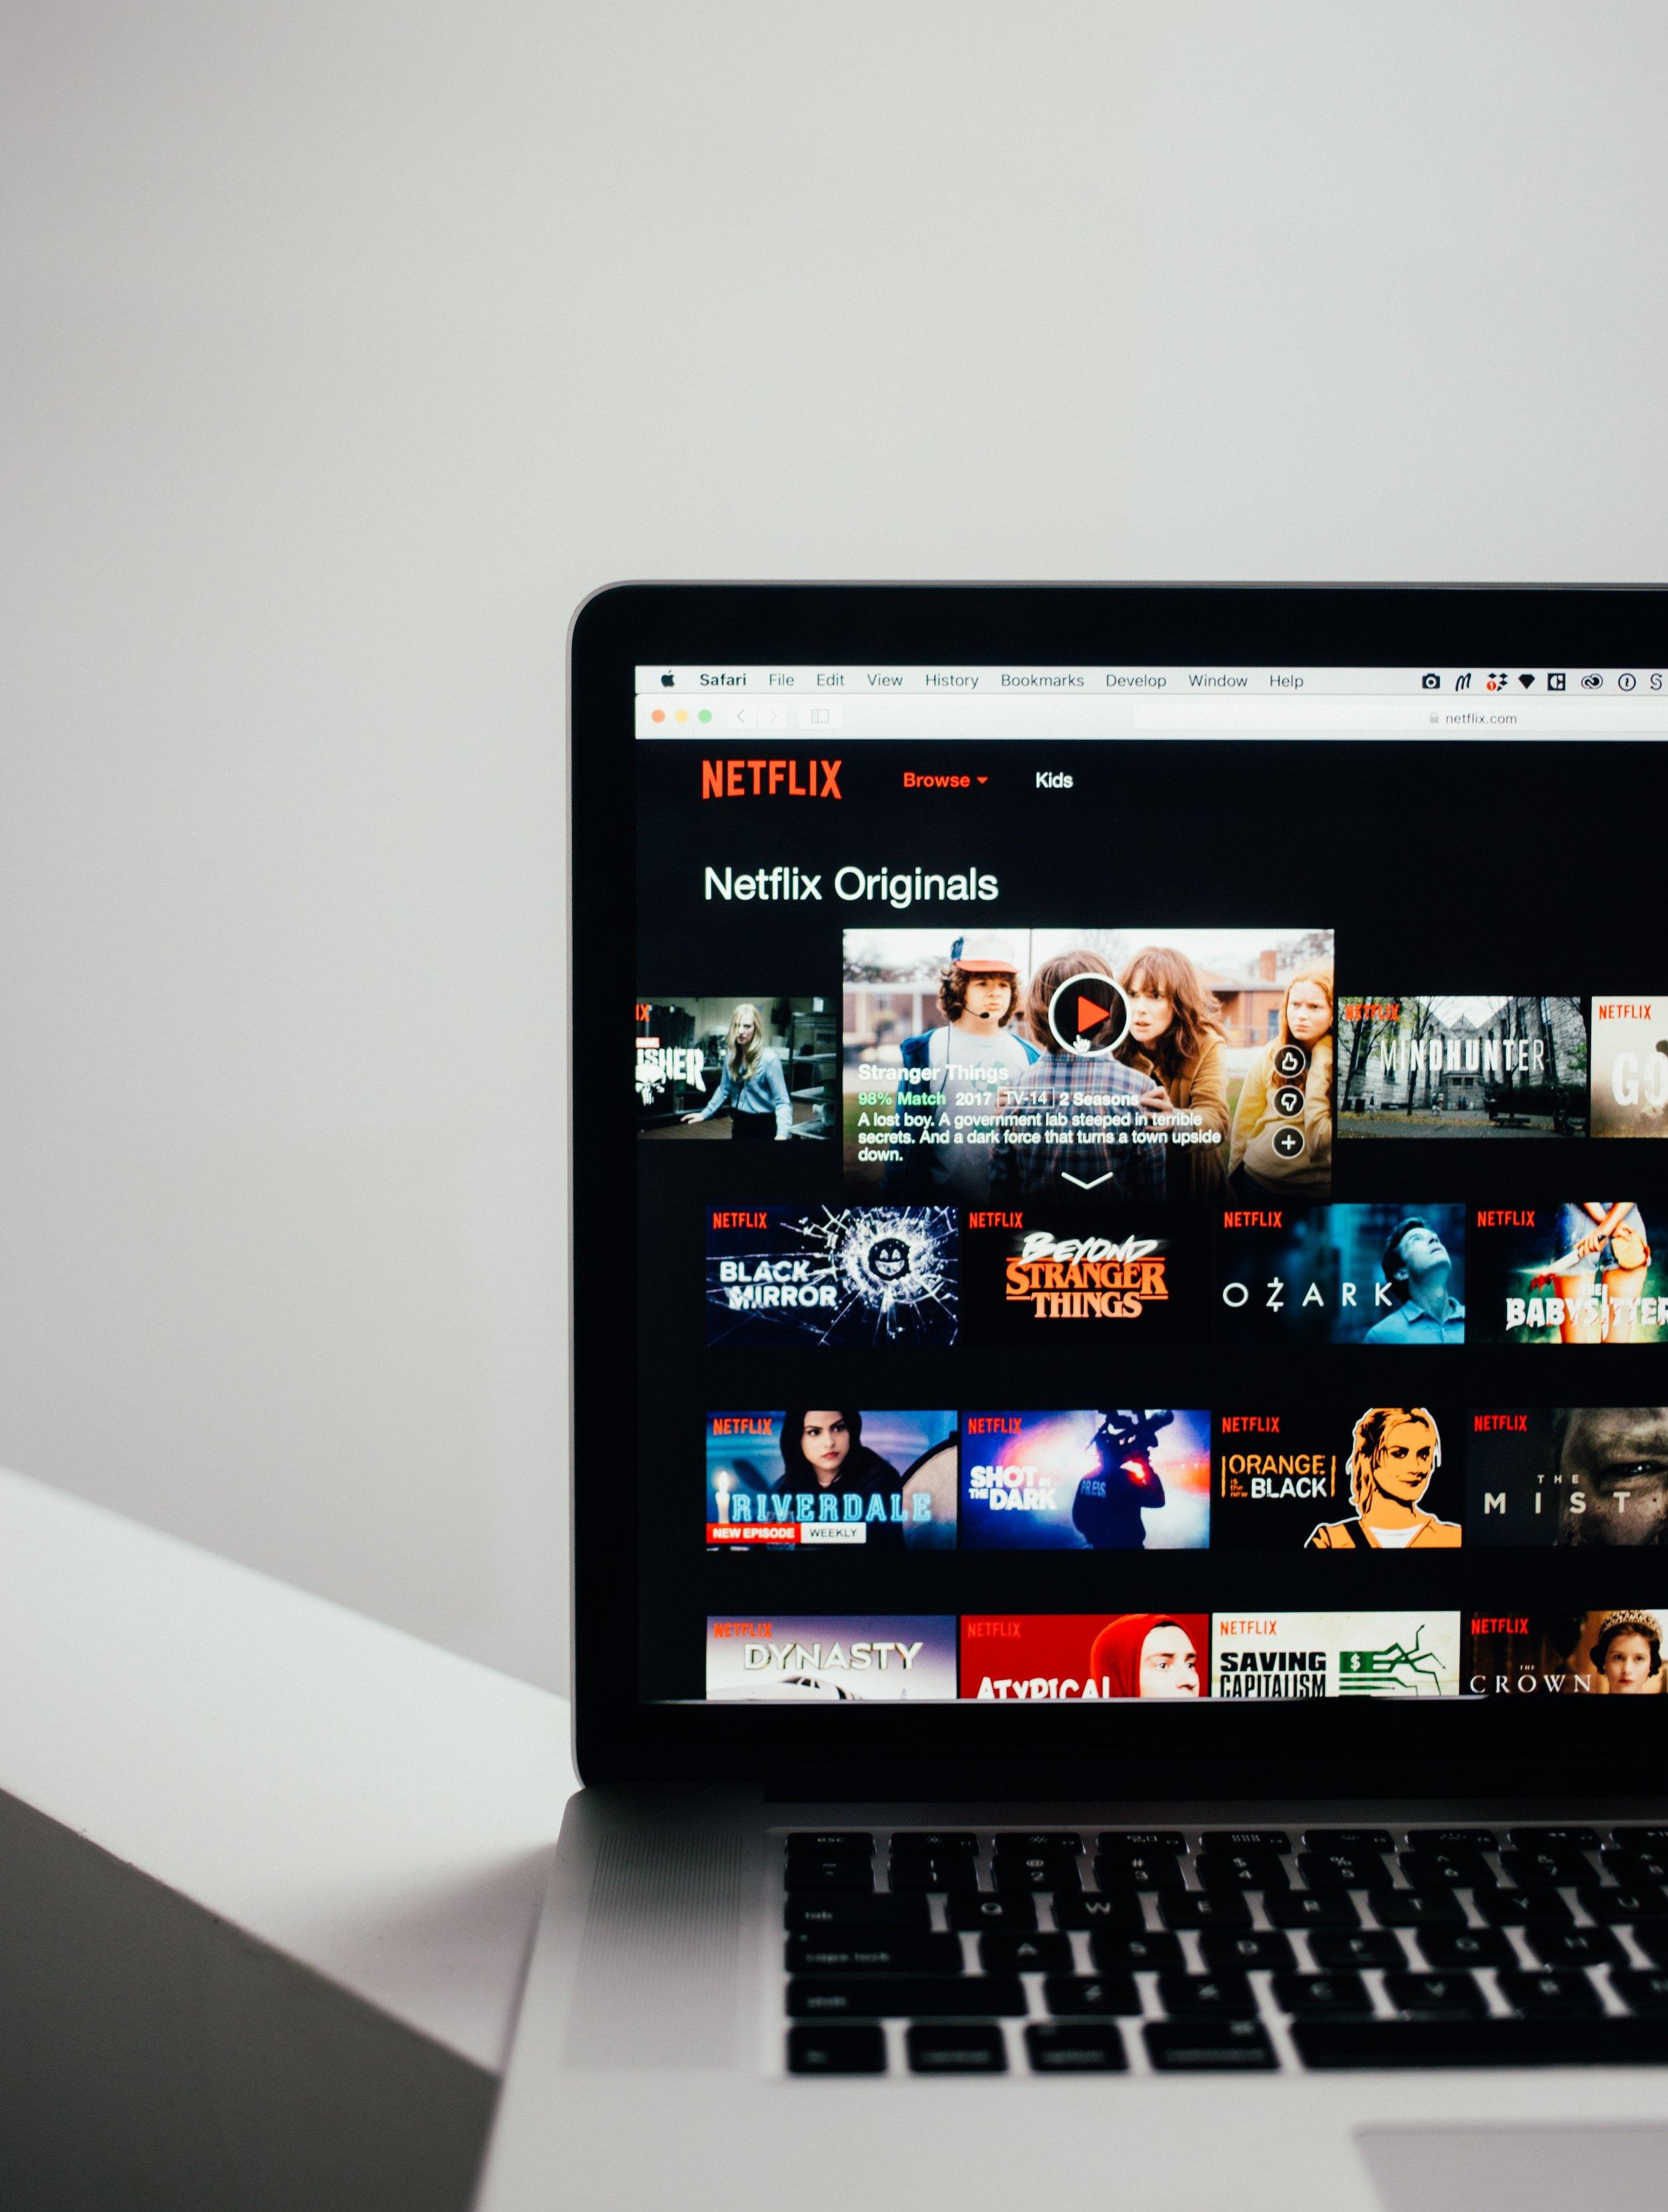 Netflix screen. Photo by Charles 🇵🇭 on Unsplash